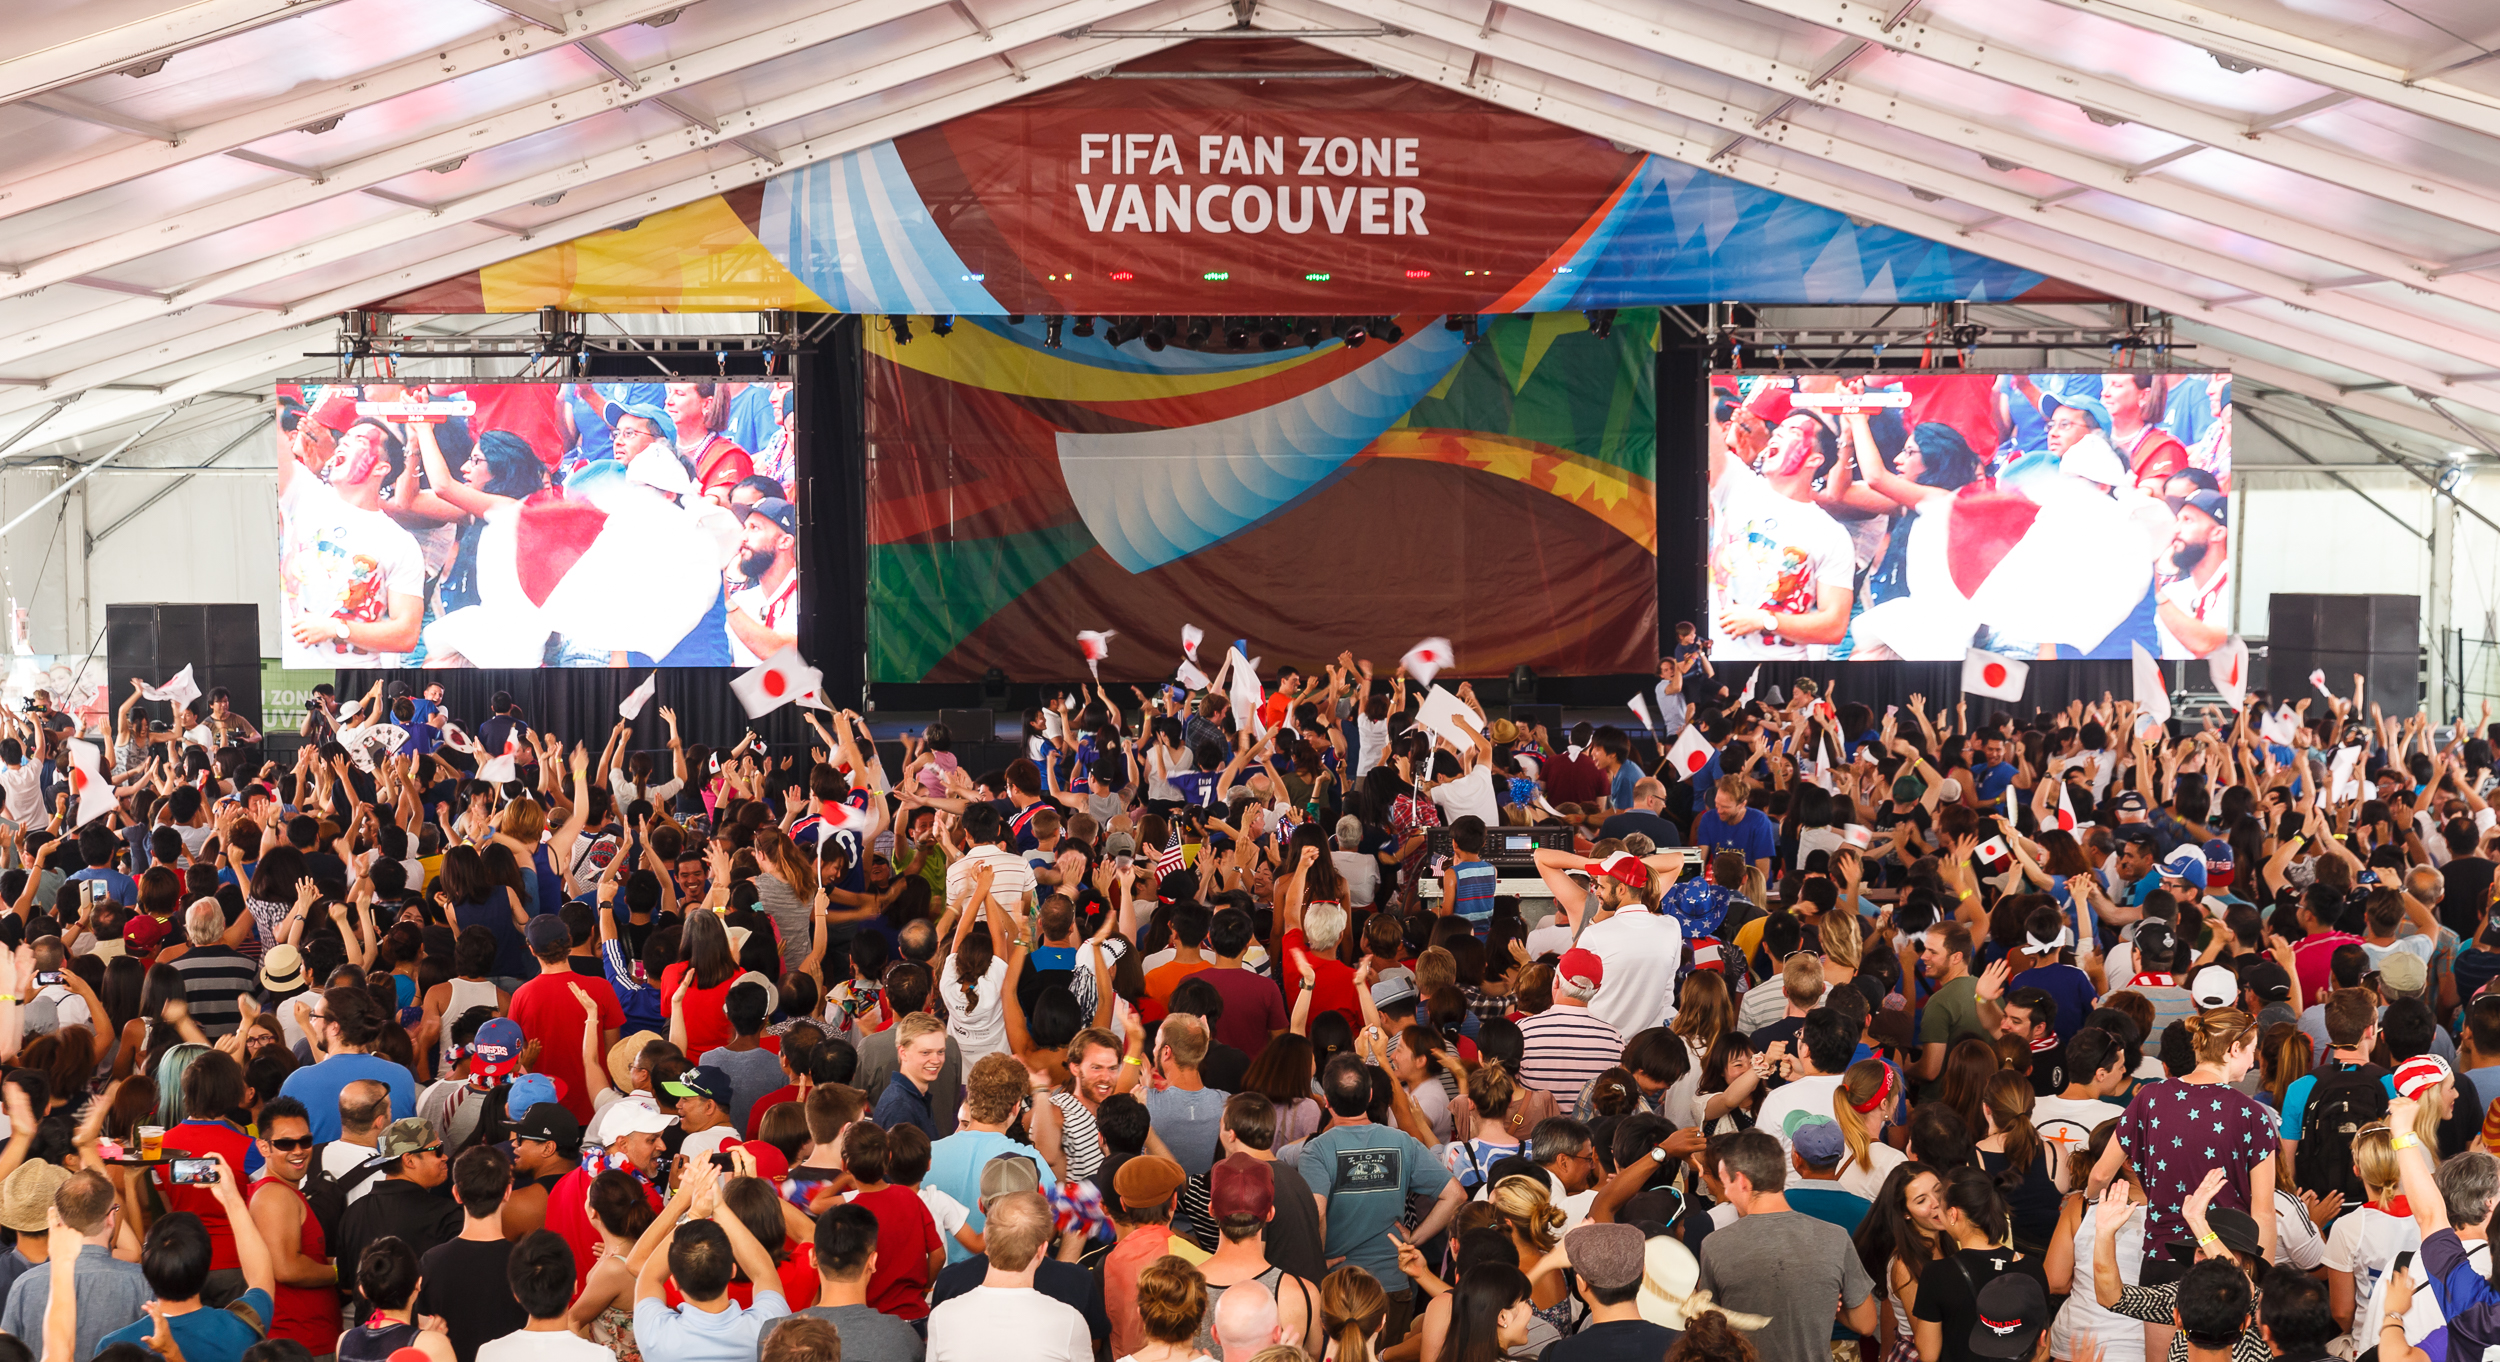 FIFA-Womens-World-Cup-Fanzone-image8.jpg